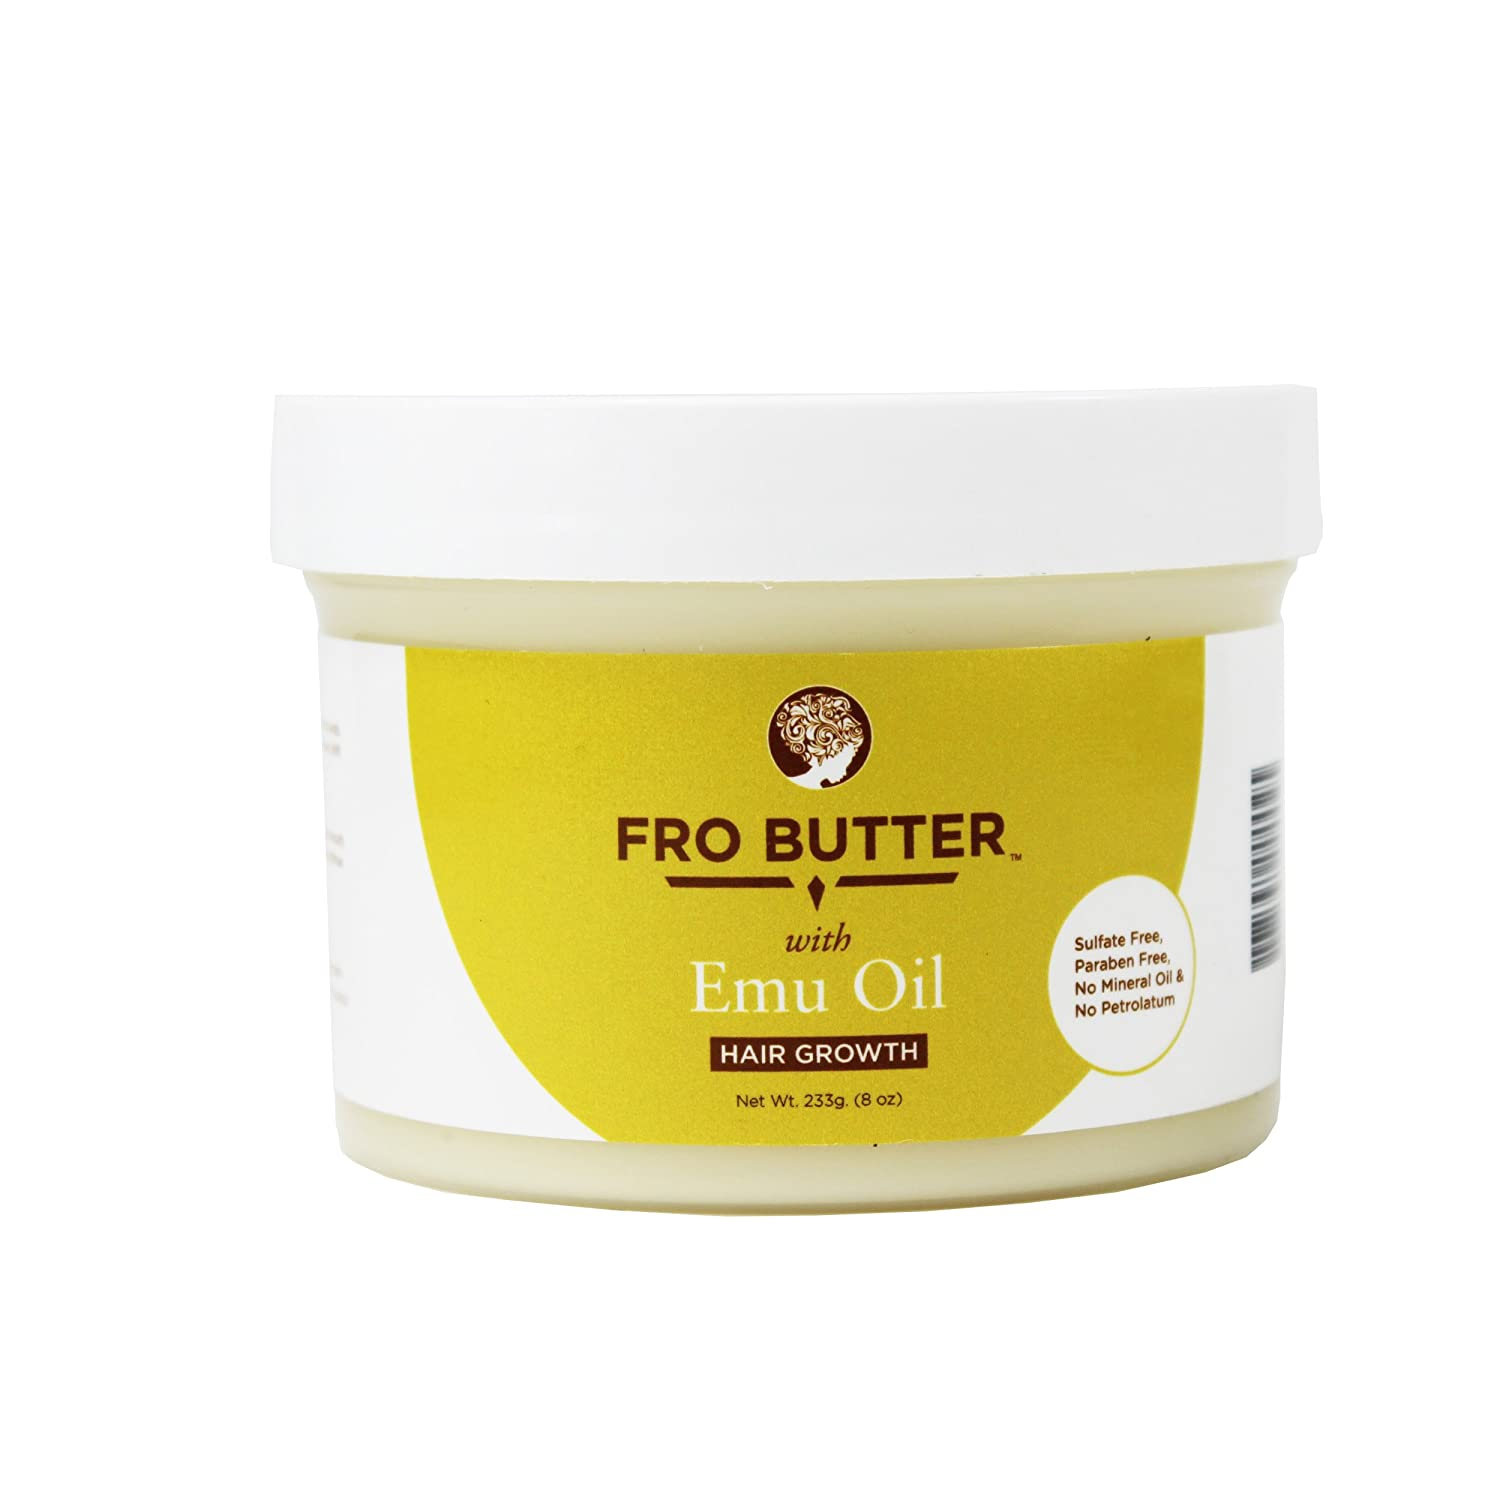 Image result for frobutter with emu oil